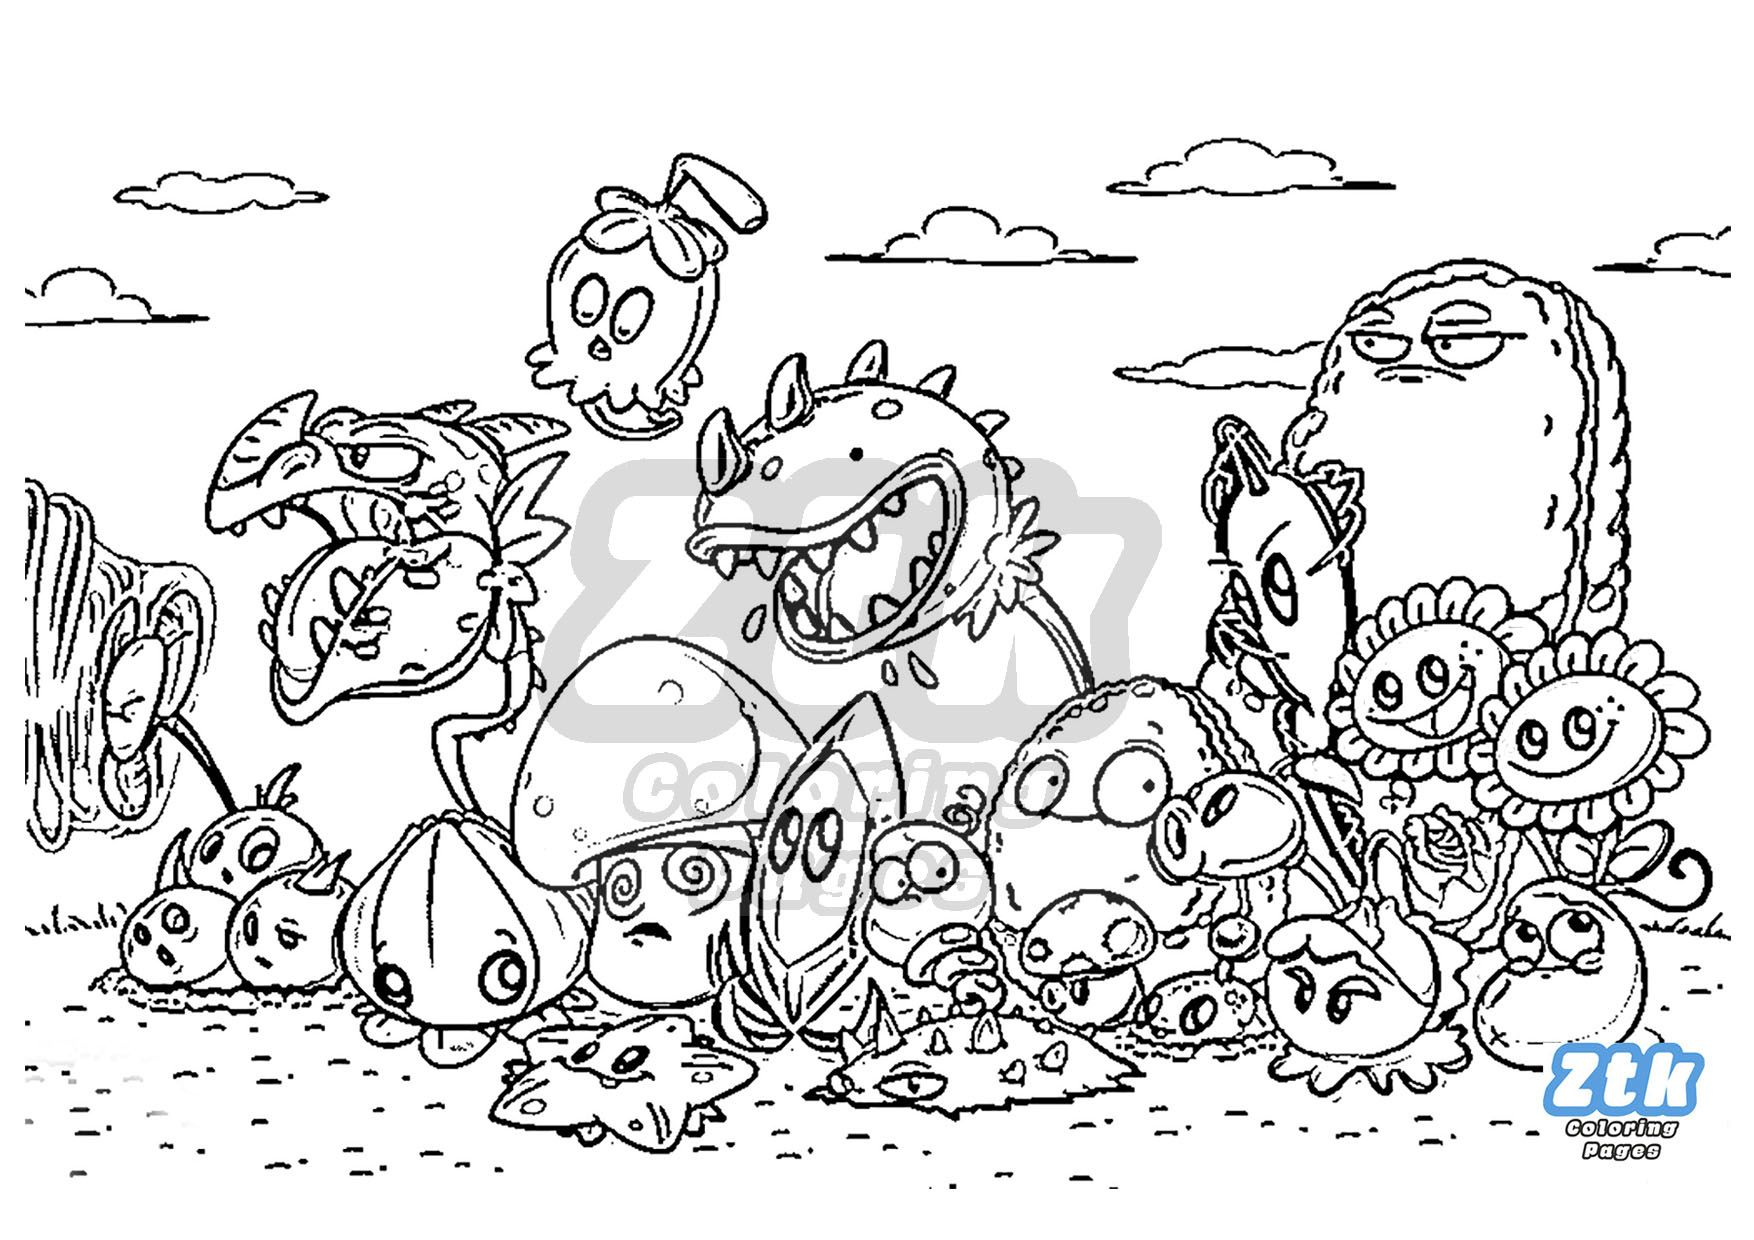 Plants vs Zombies to paint Ztk Coloring Pages | Dibujos ...